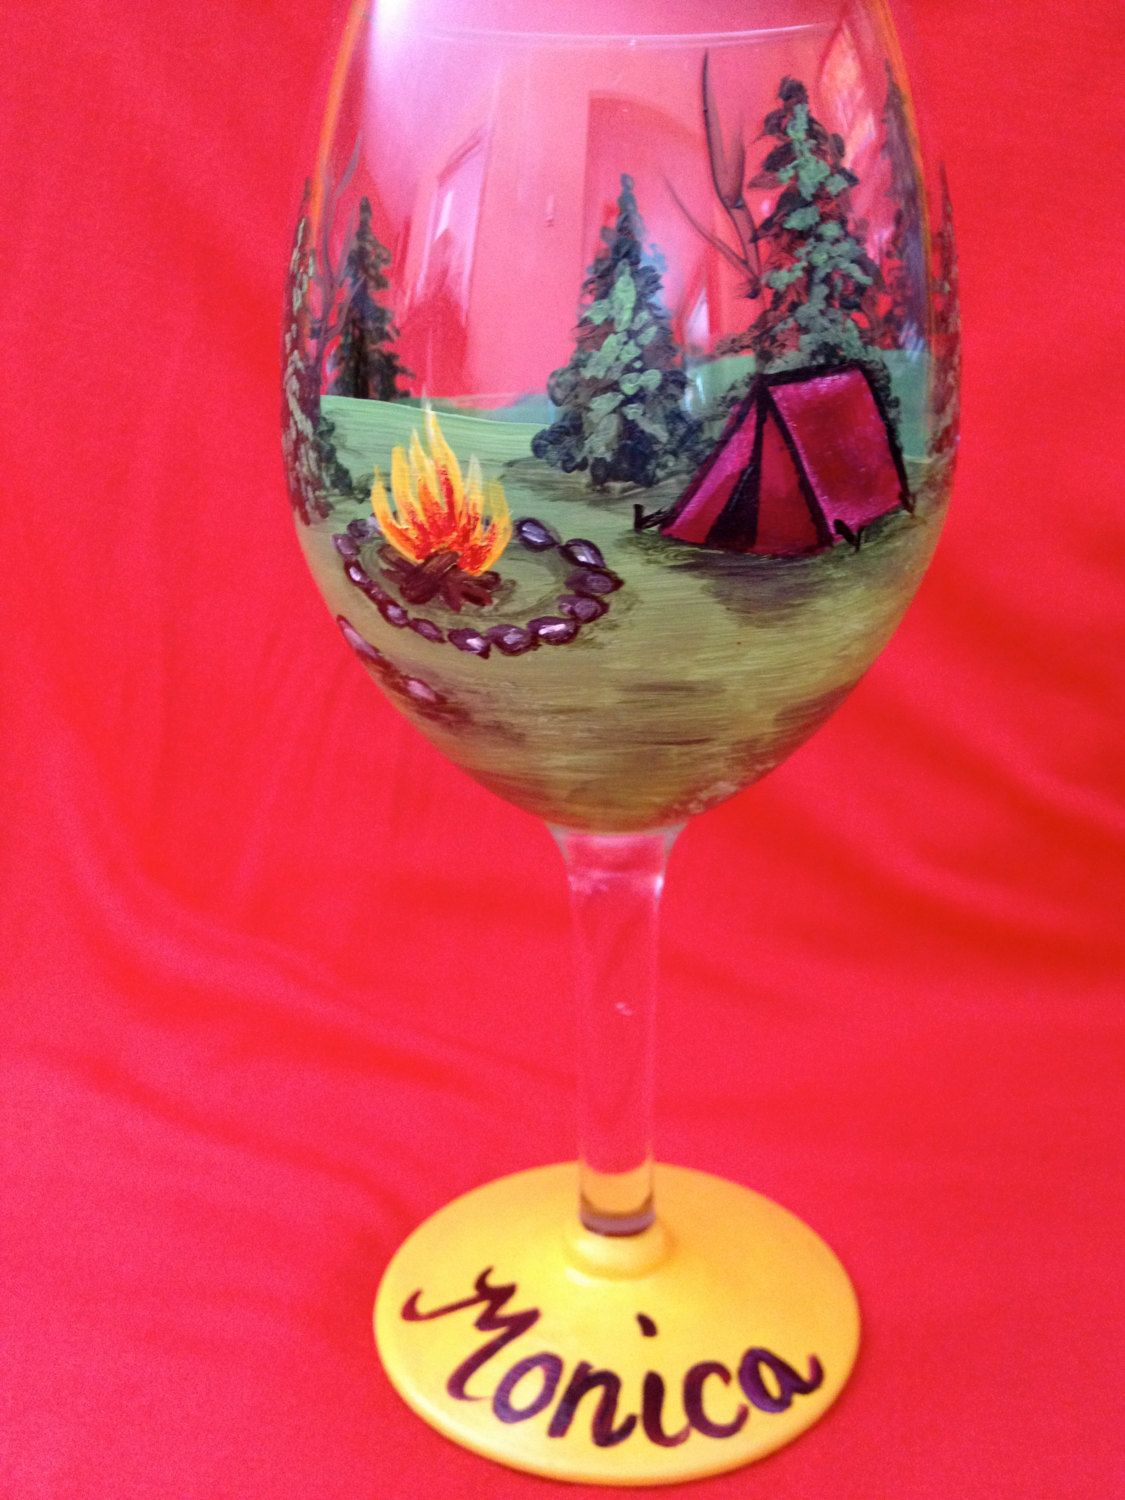 Camping Wine Glasses Google Search Camping Wine Glasses Camping Wine Wine Glasses